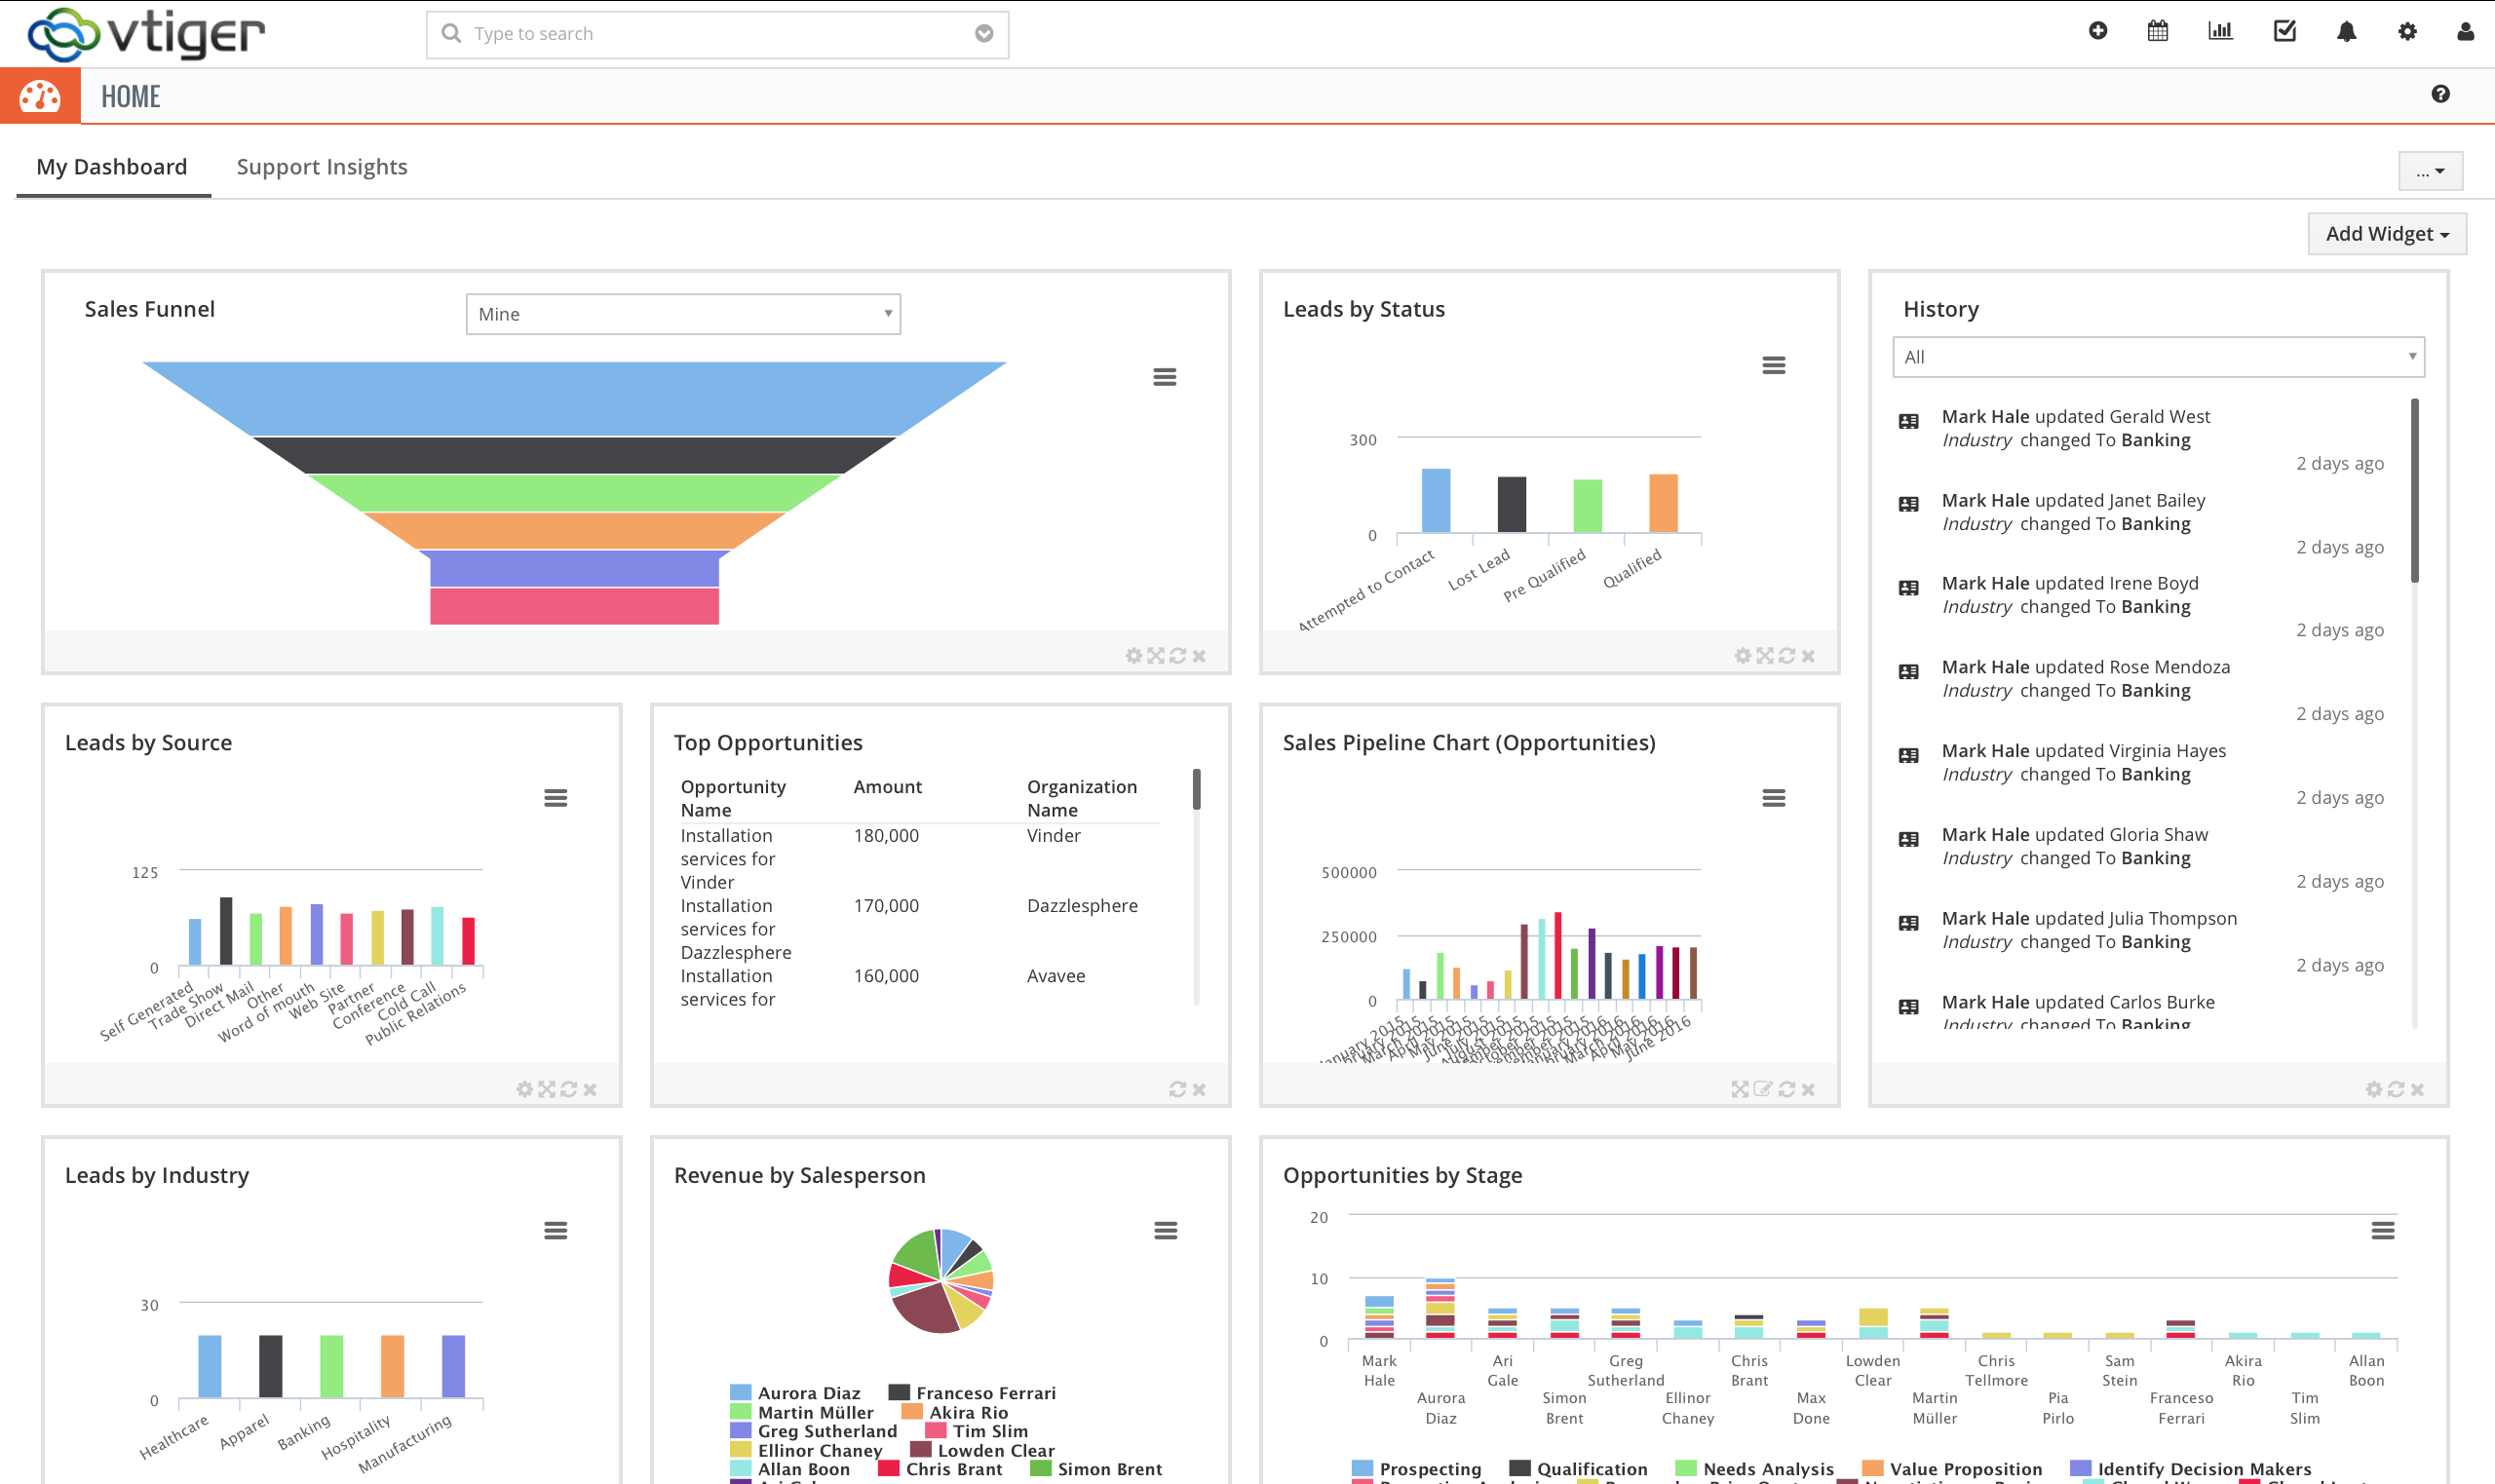 A screenshot of the Vtiger CRM dashboard, complete with a